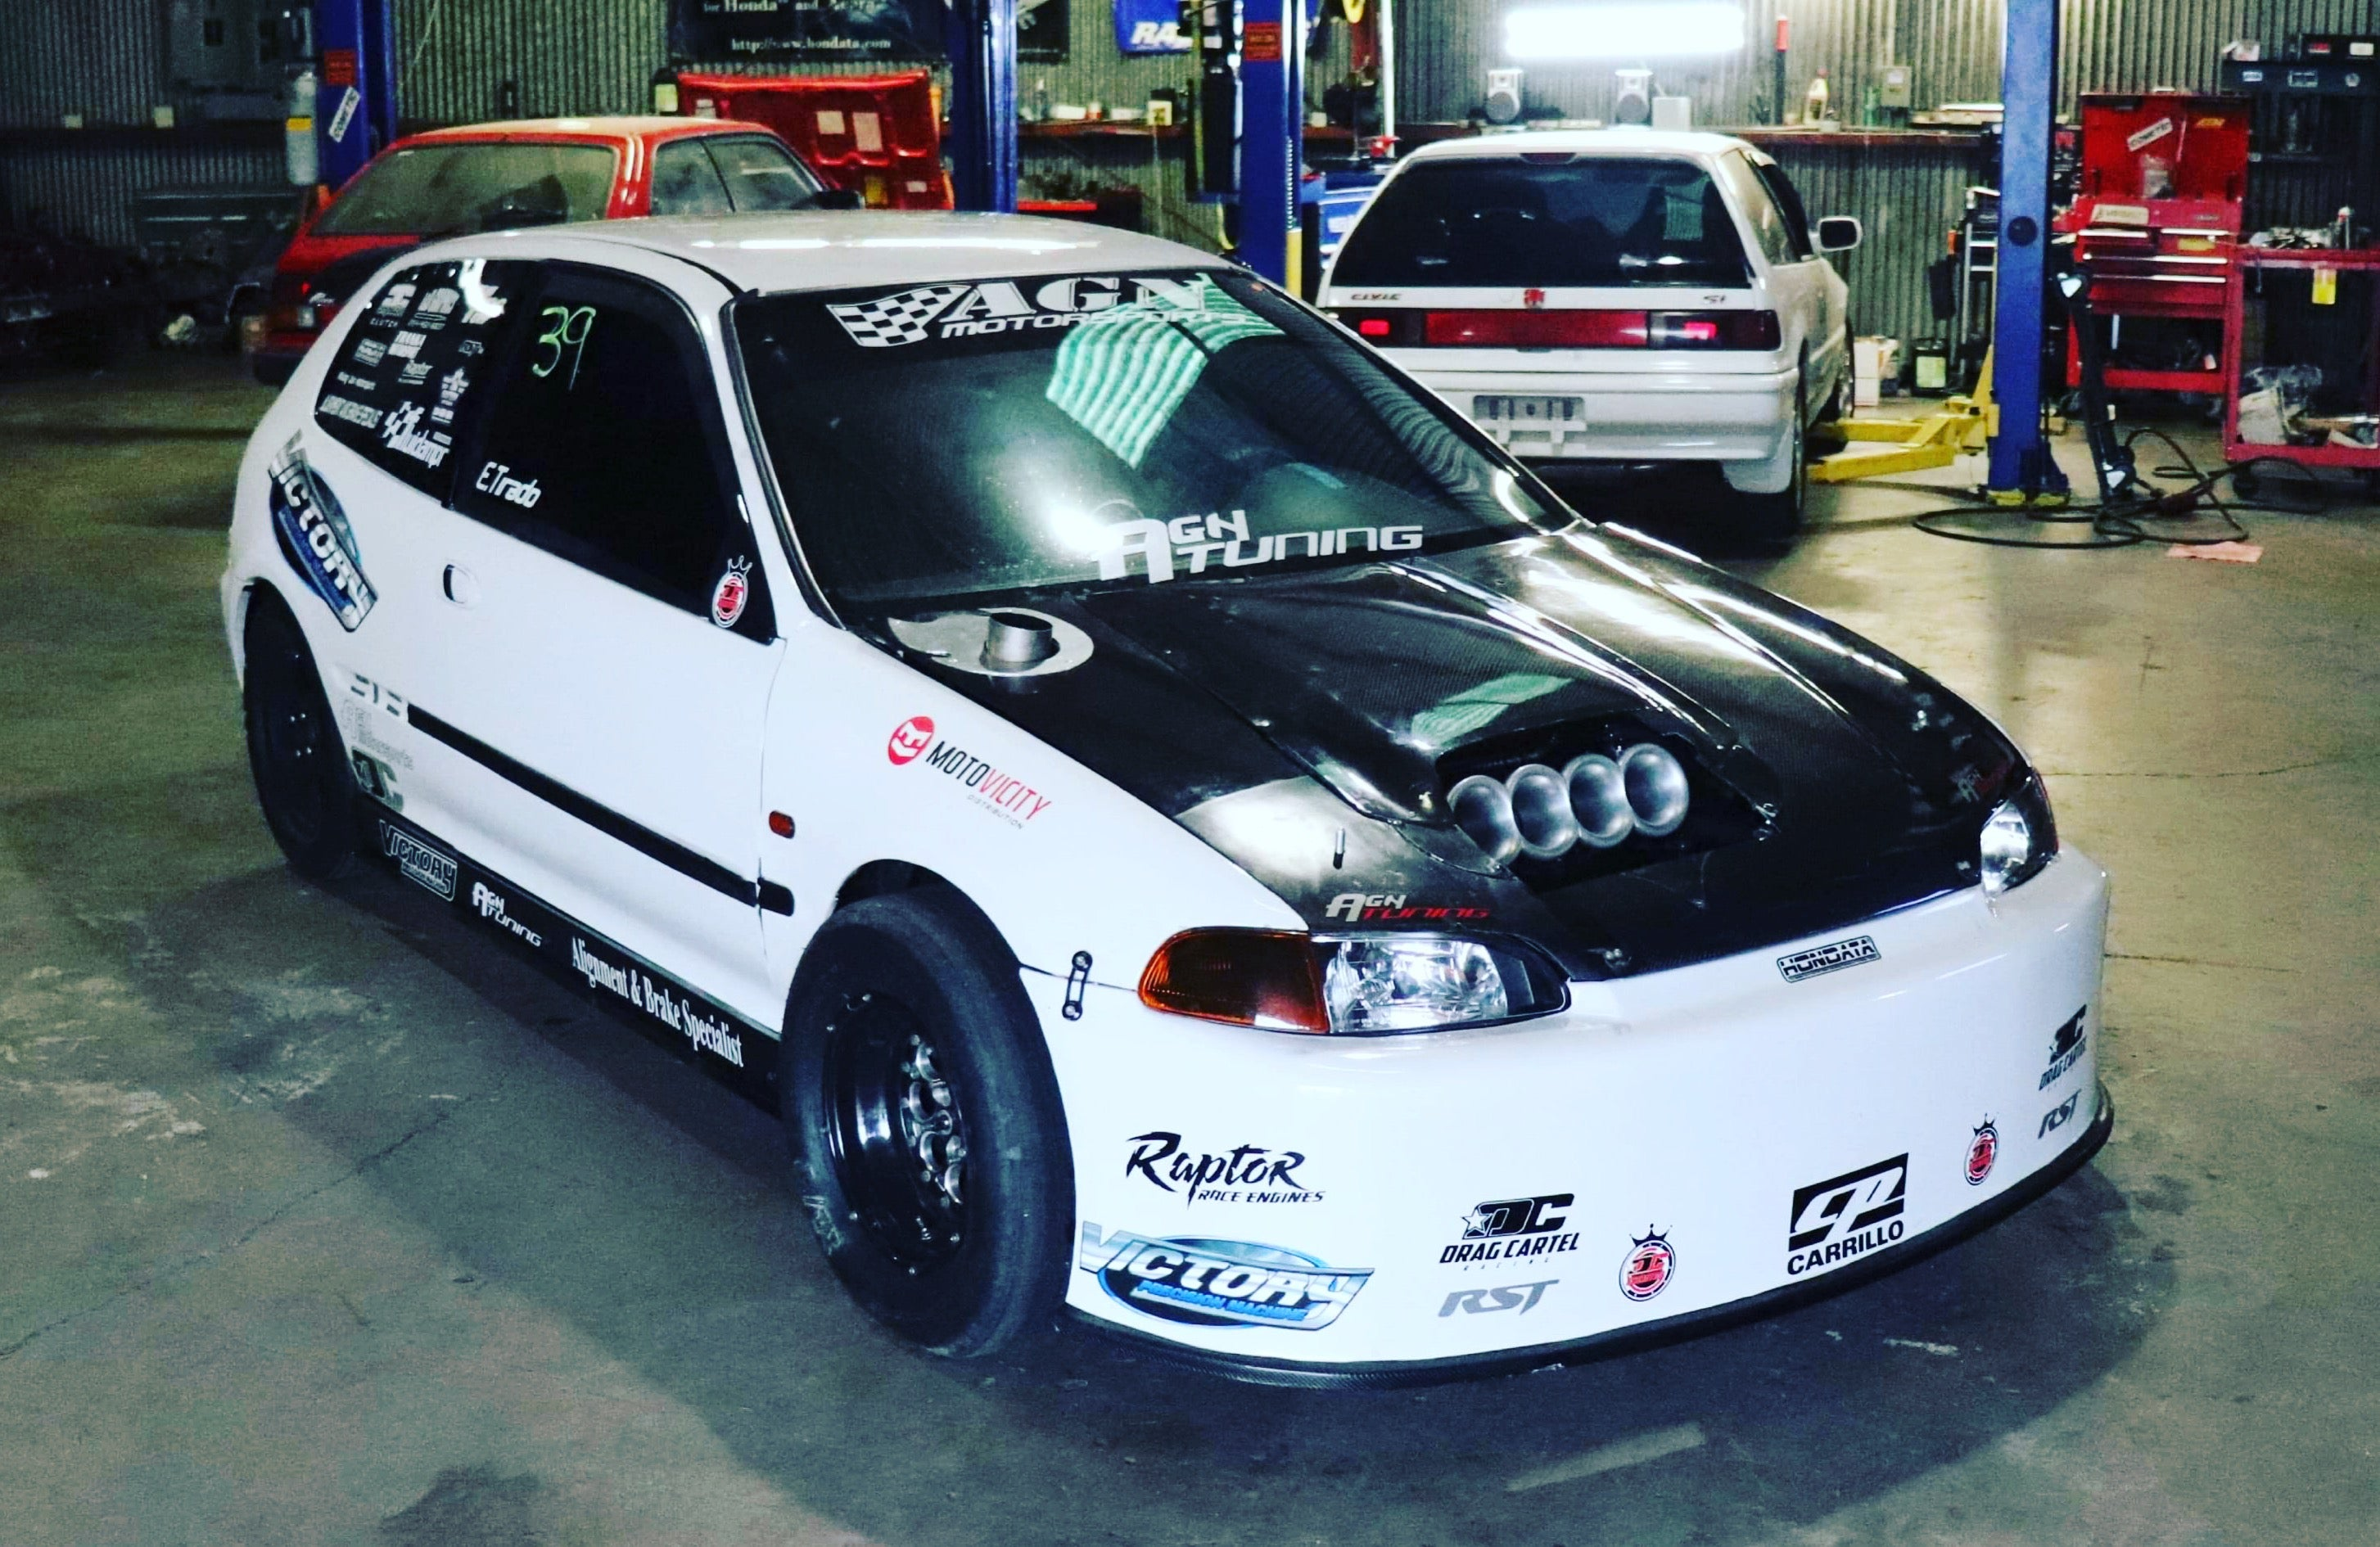 AGN Motorsports K-series drag racing